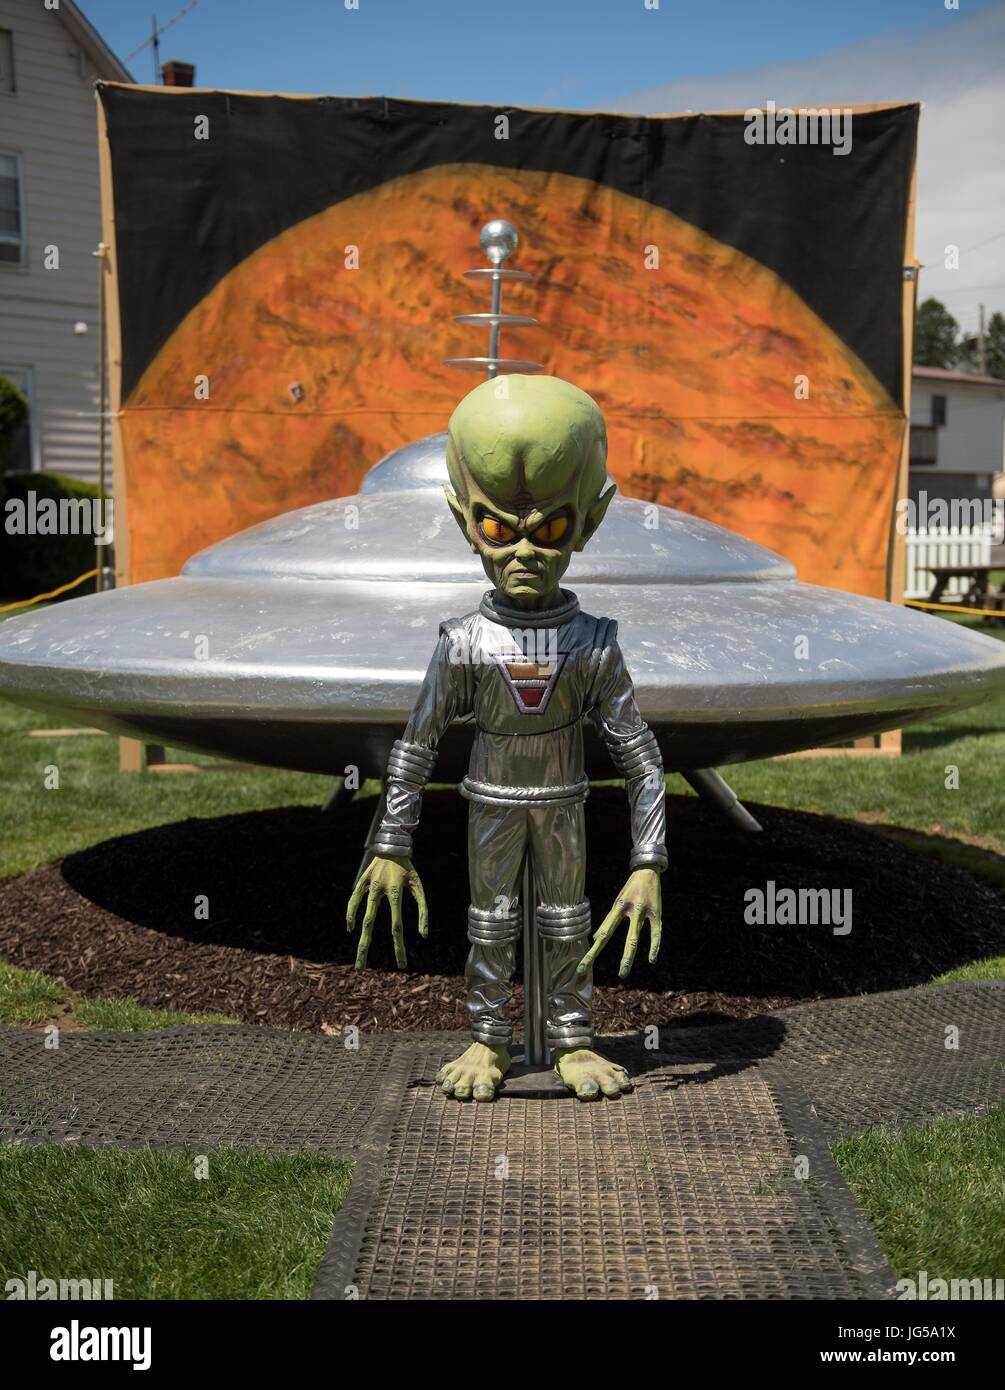 An alien statue and sculpture of a UFO is set up for the Mars New Years Celebration May 5, 2017 in Mars, Pennsylvania. - Stock Image